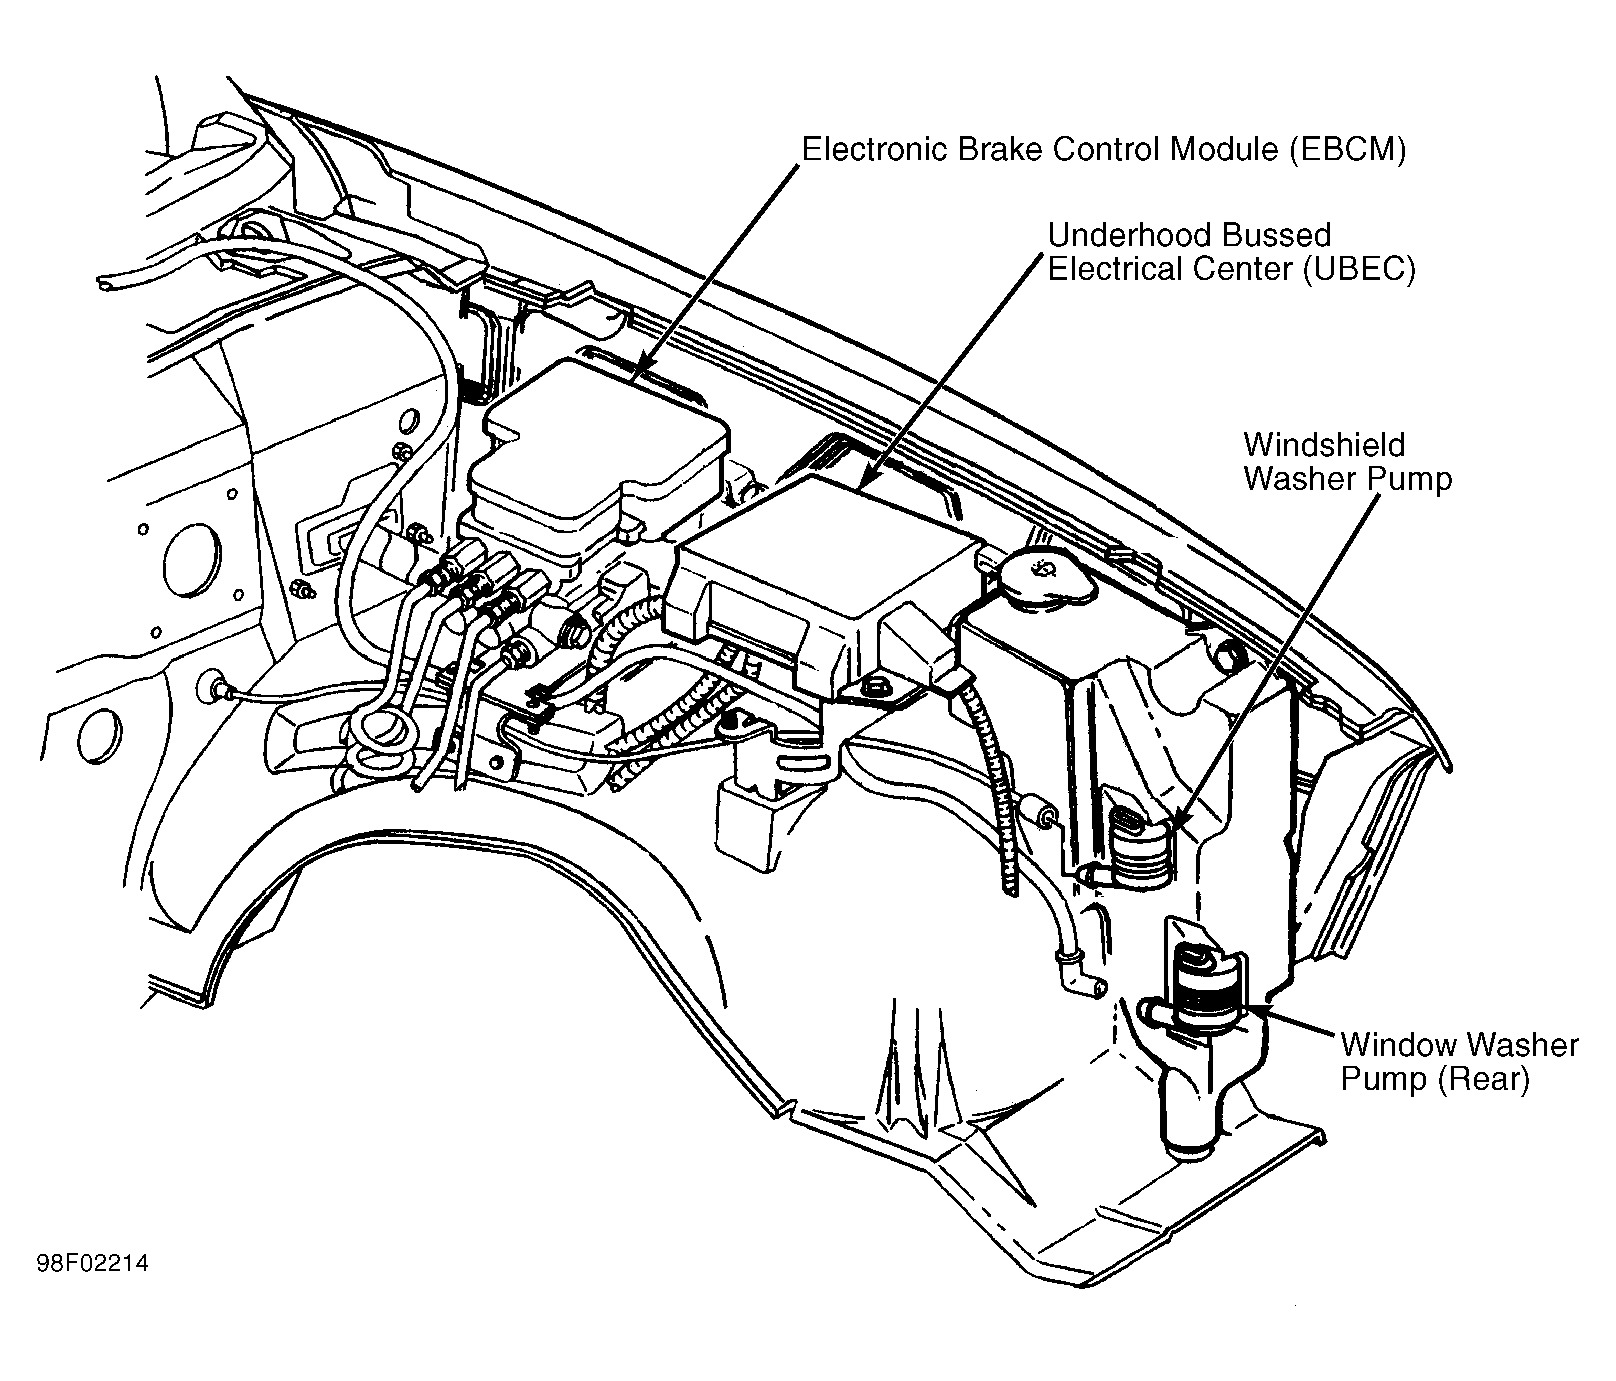 hight resolution of 1994 gmc jimmy wiring diagram images gallery